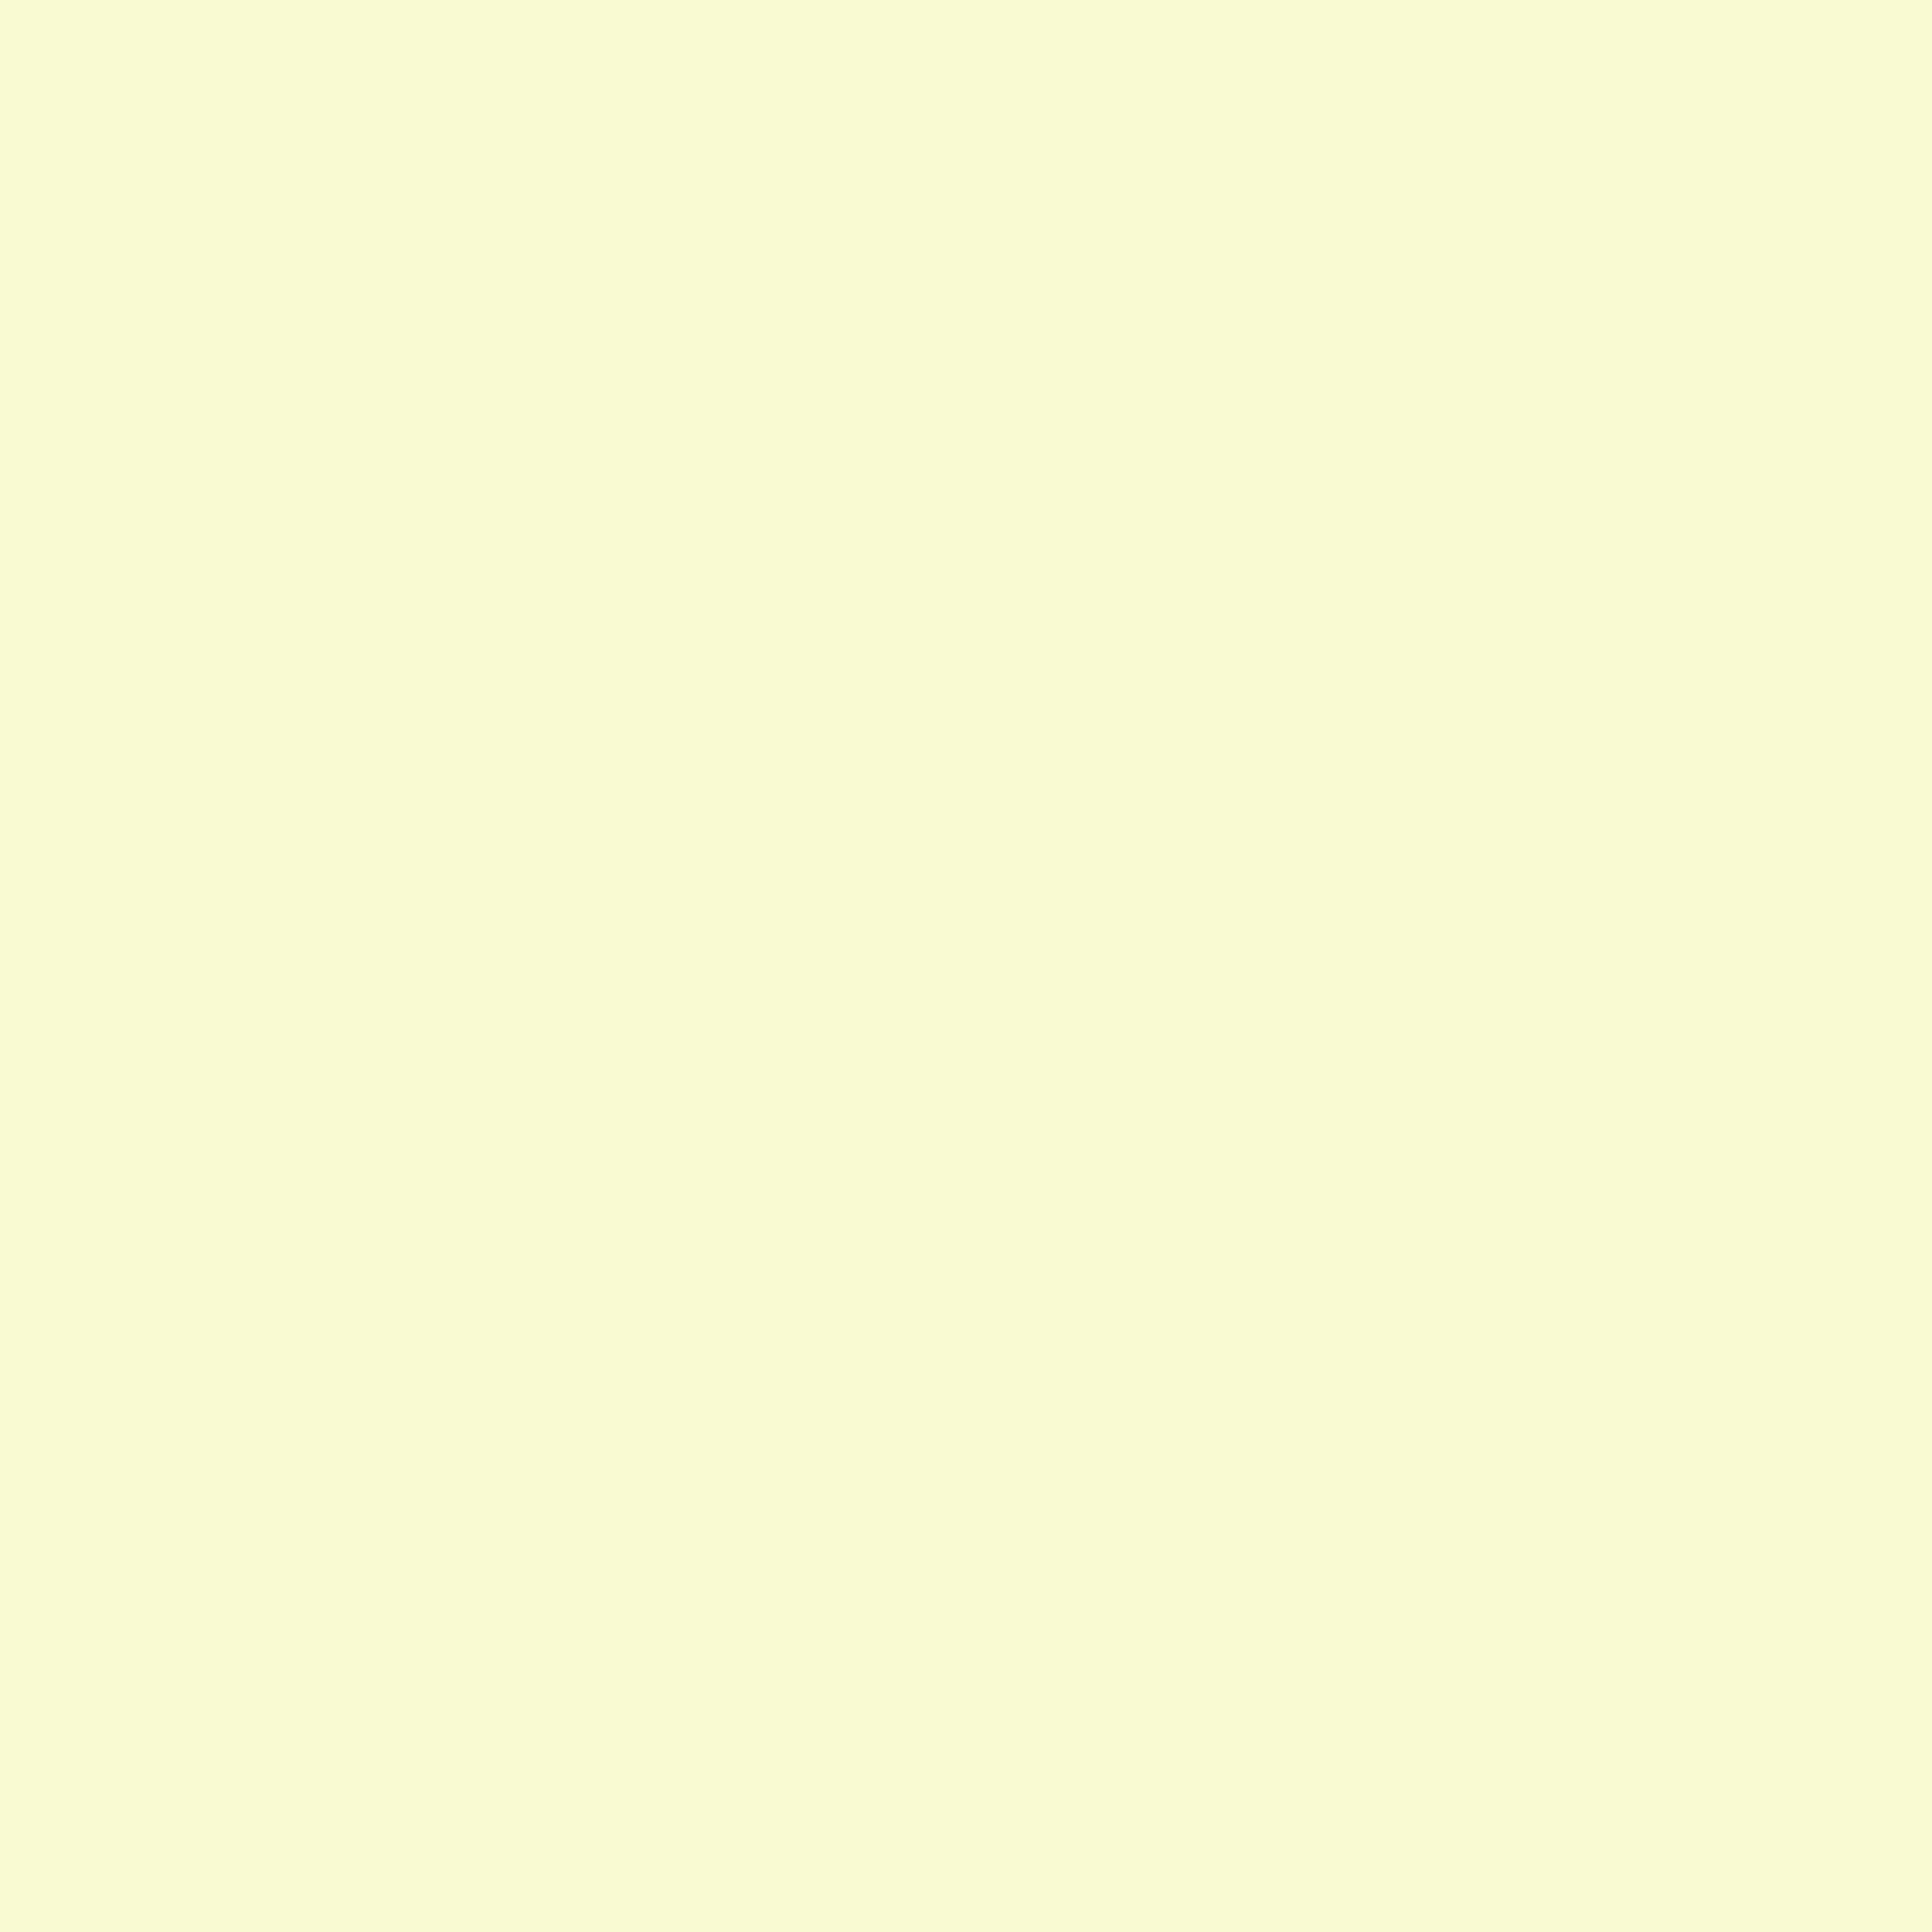 2048x2048 Light Goldenrod Yellow Solid Color Background